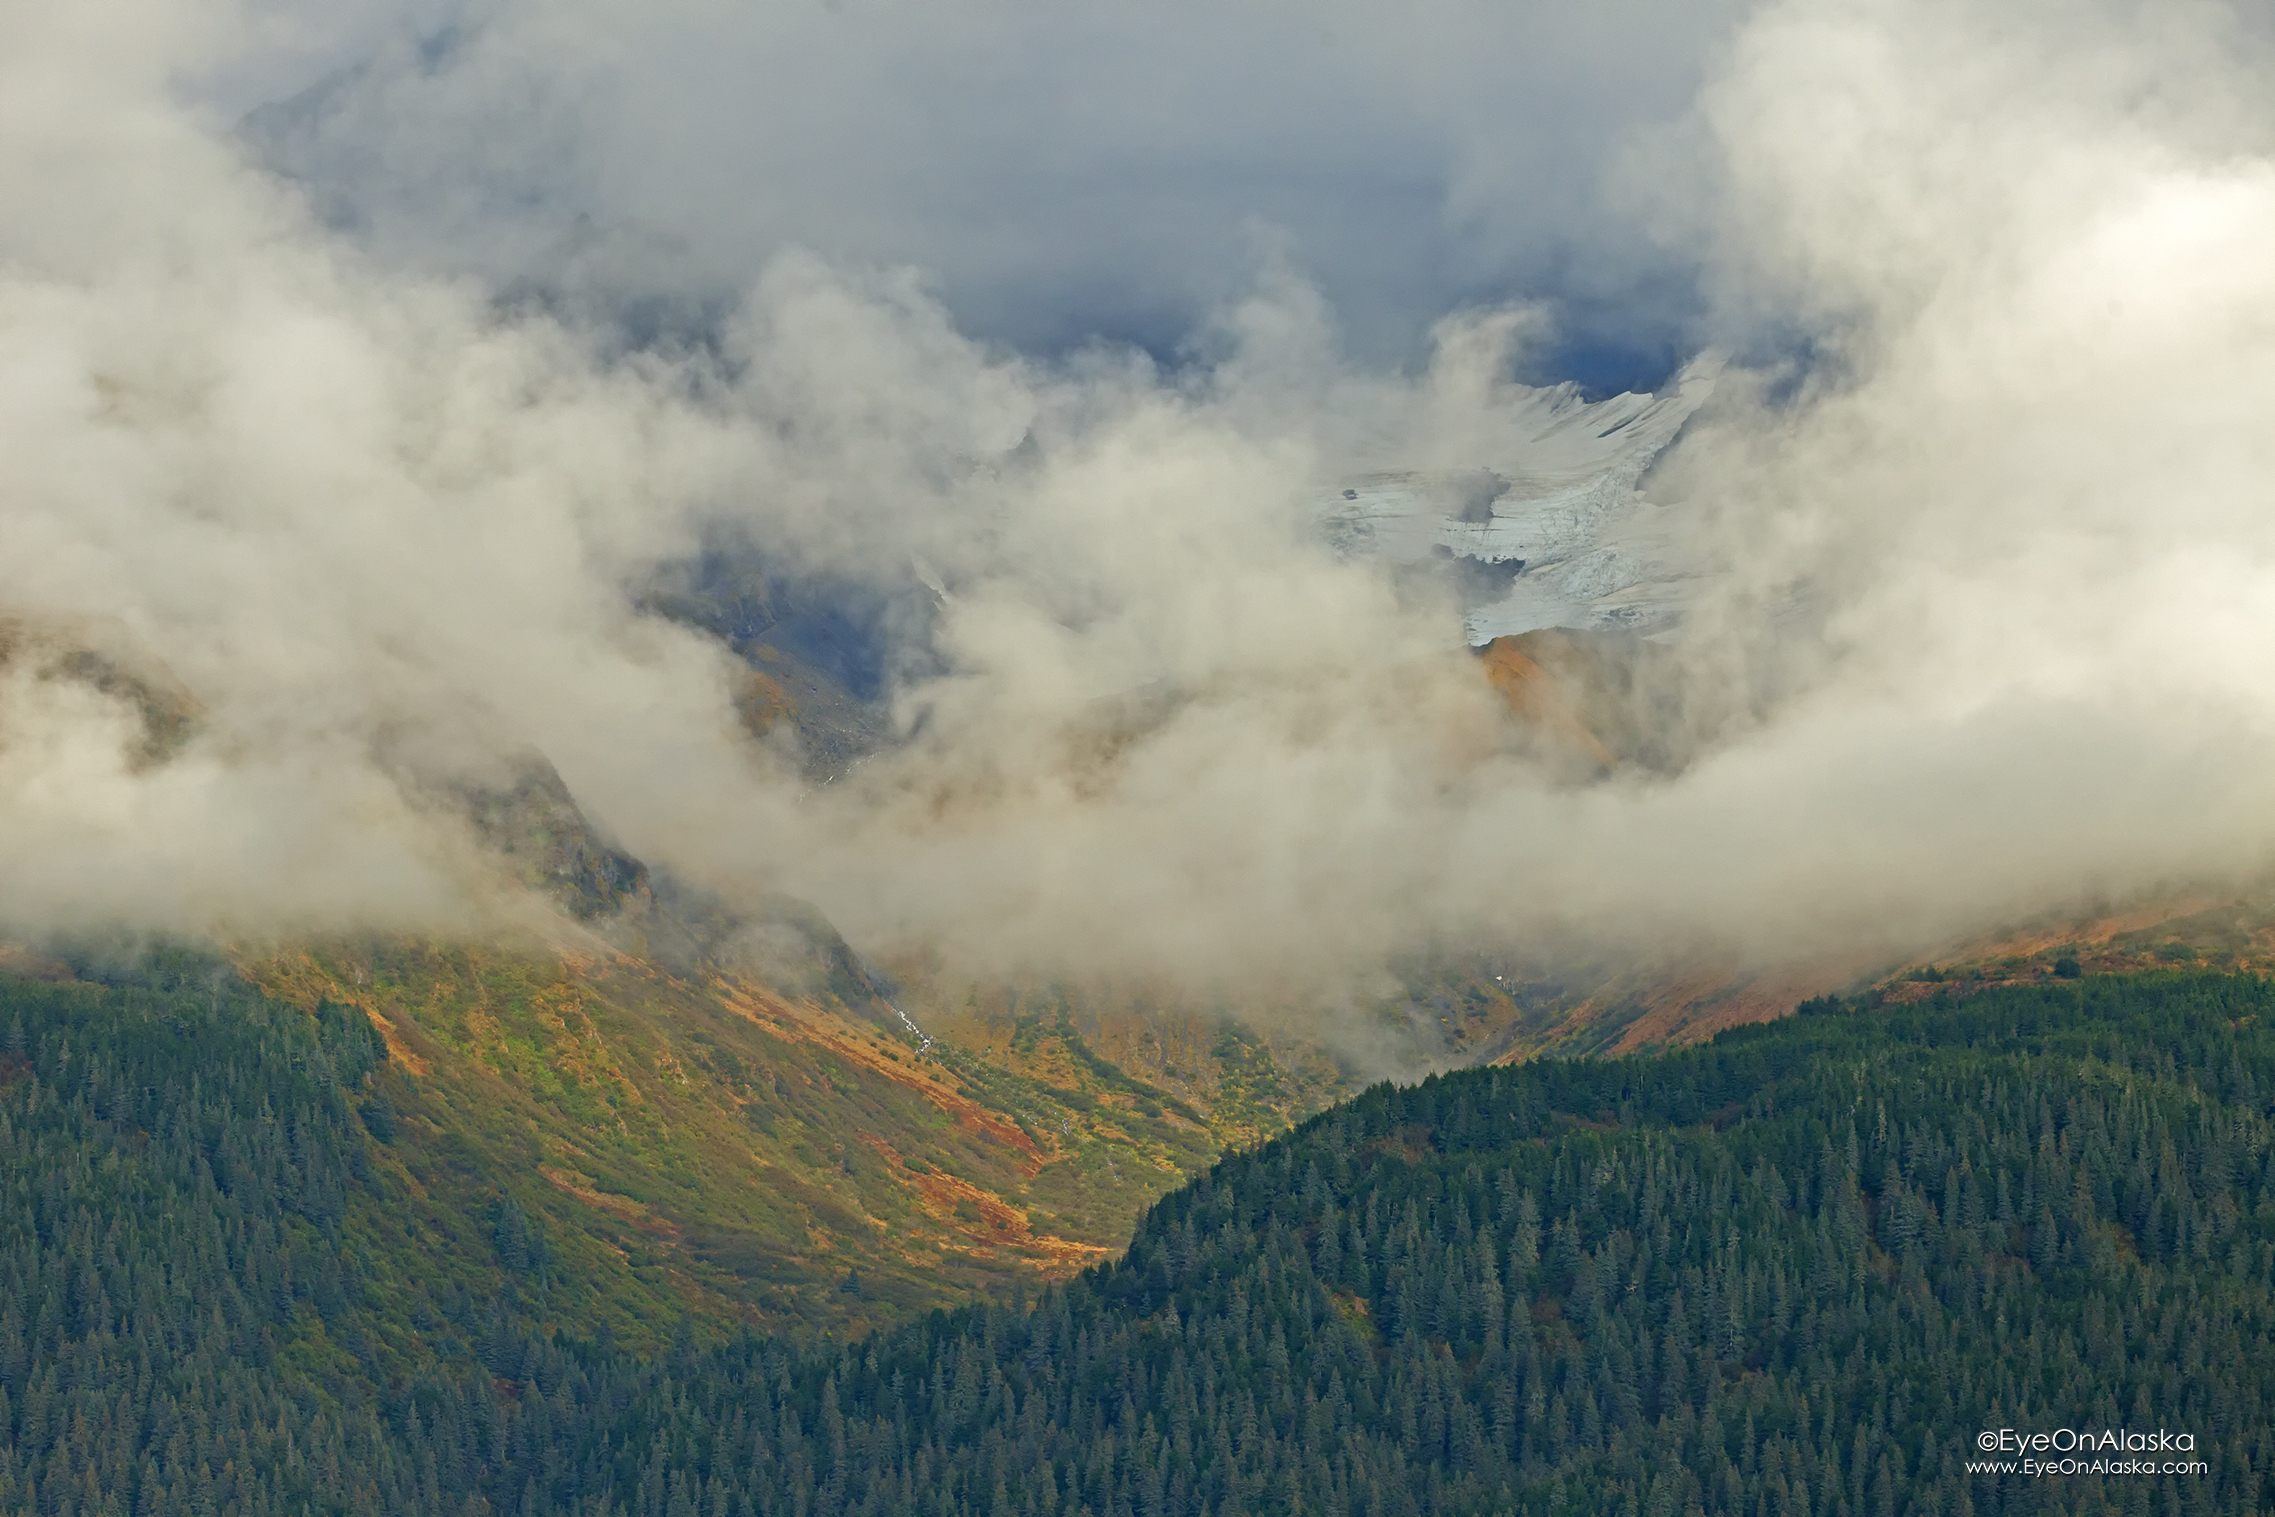 The view across the bay. Hanging glaciers hiding in the clouds. Fall colors in the alpine meadows.